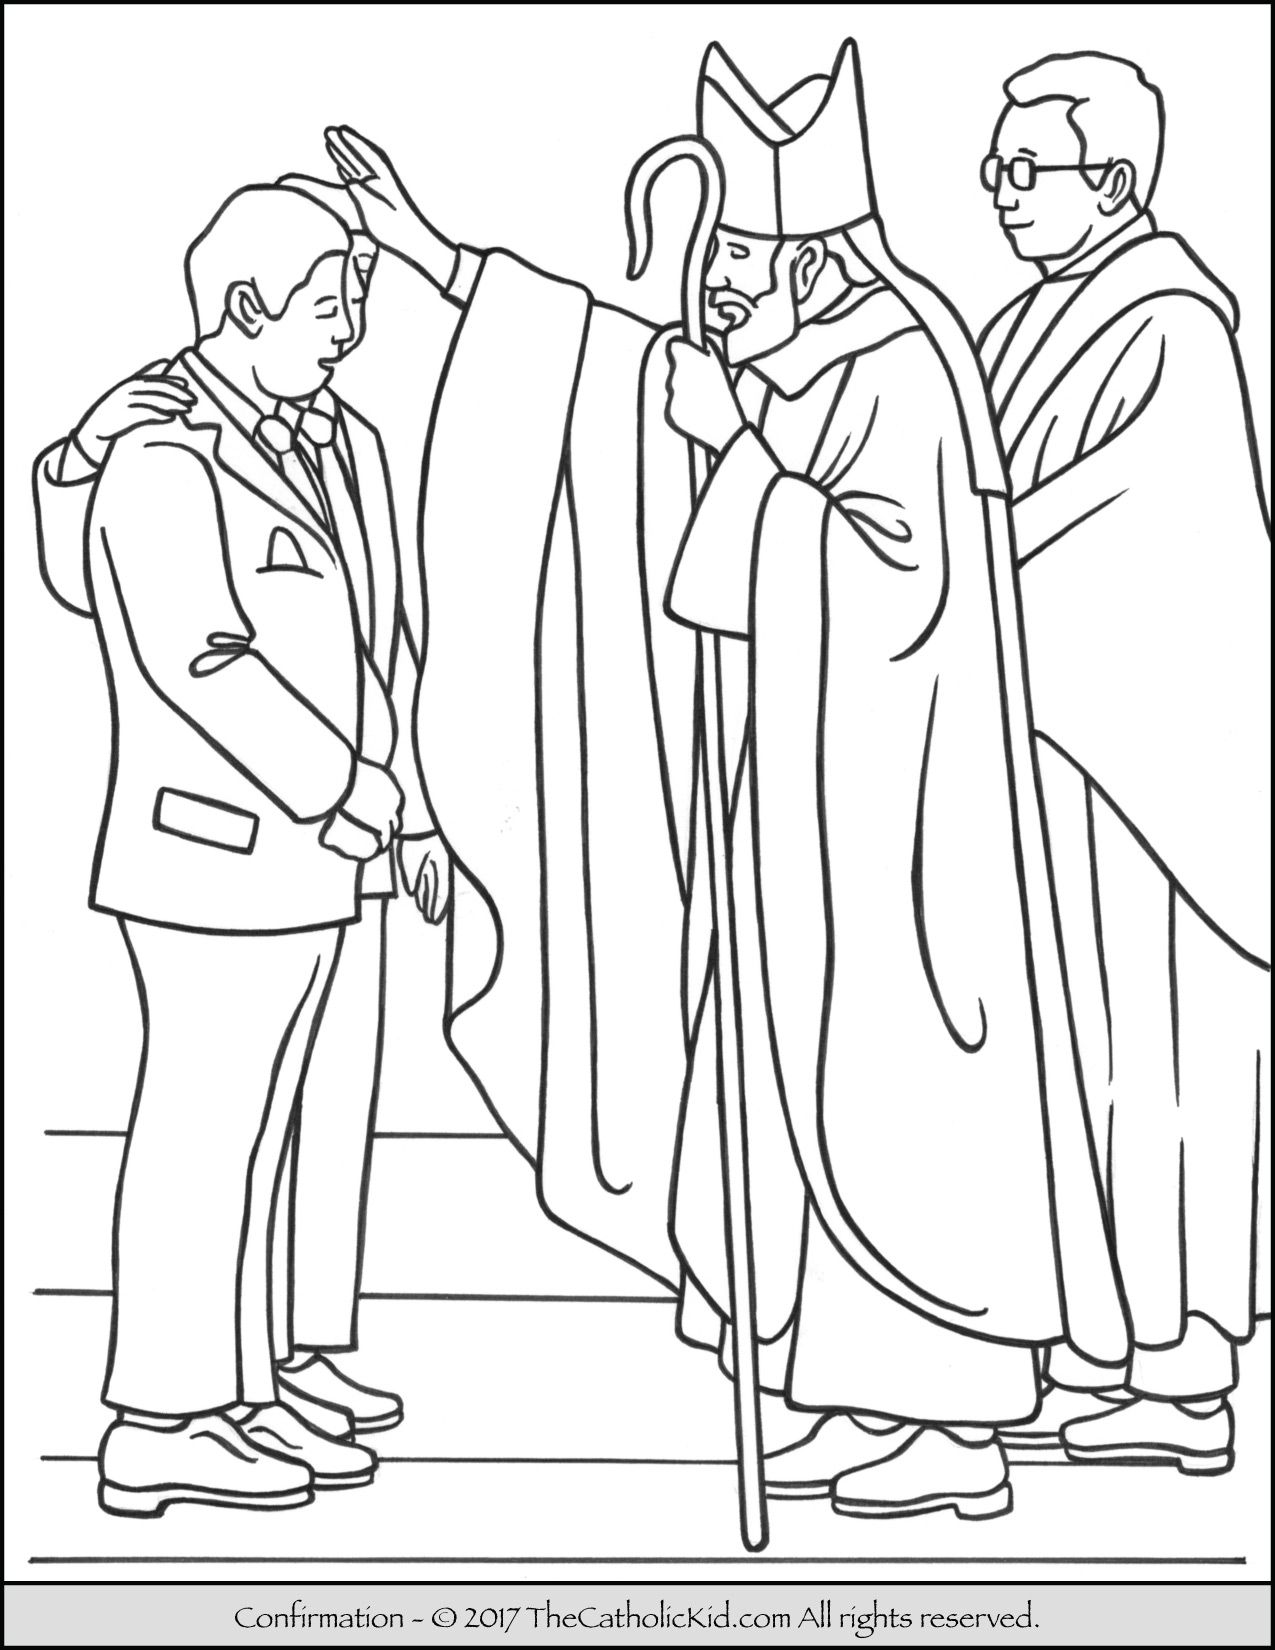 Sacrament of Confirmation Coloring Page. | Sacrament Coloring Pages ...